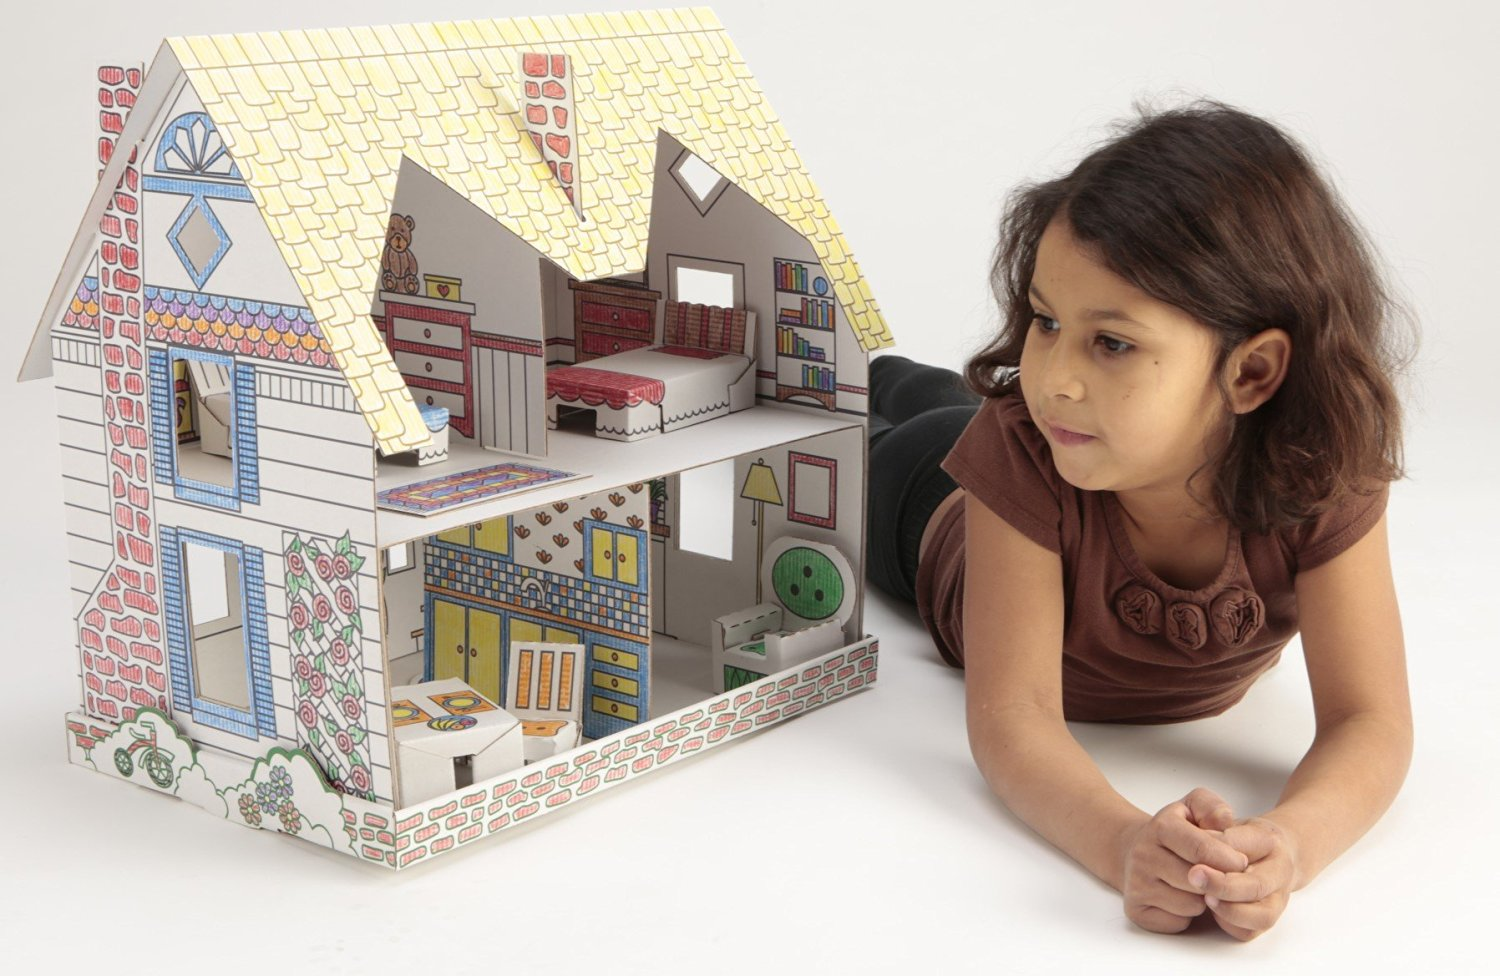 Interior Dollhouse